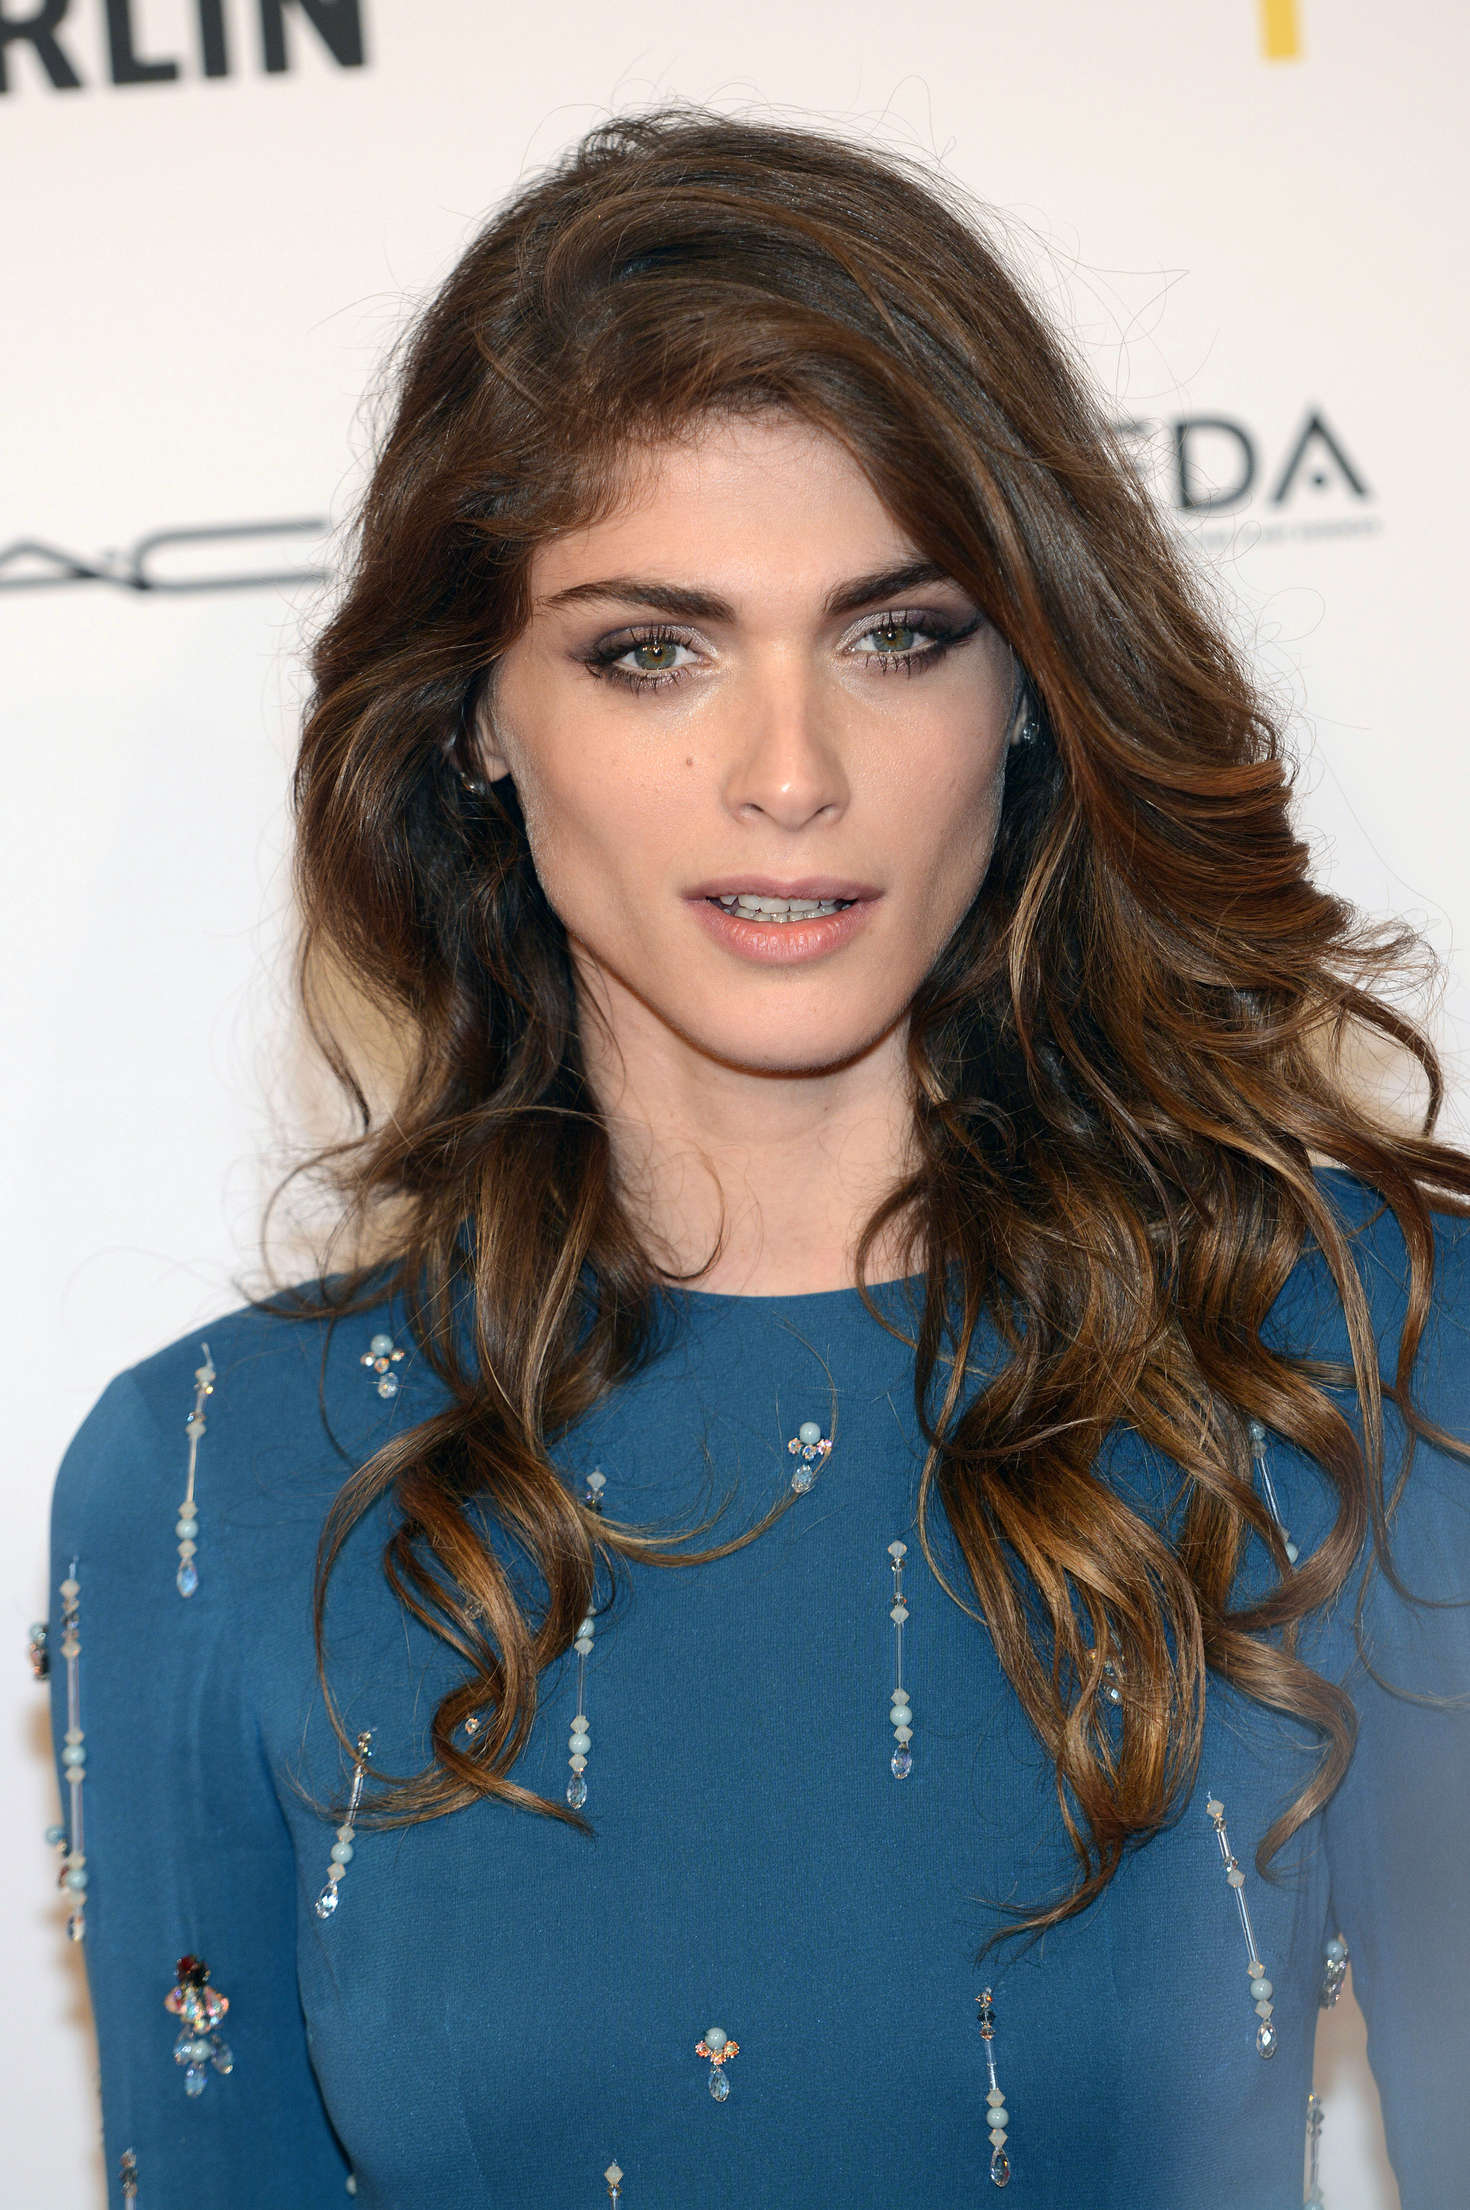 Elisa Sednaoui Annual European Film Awards in Berlin